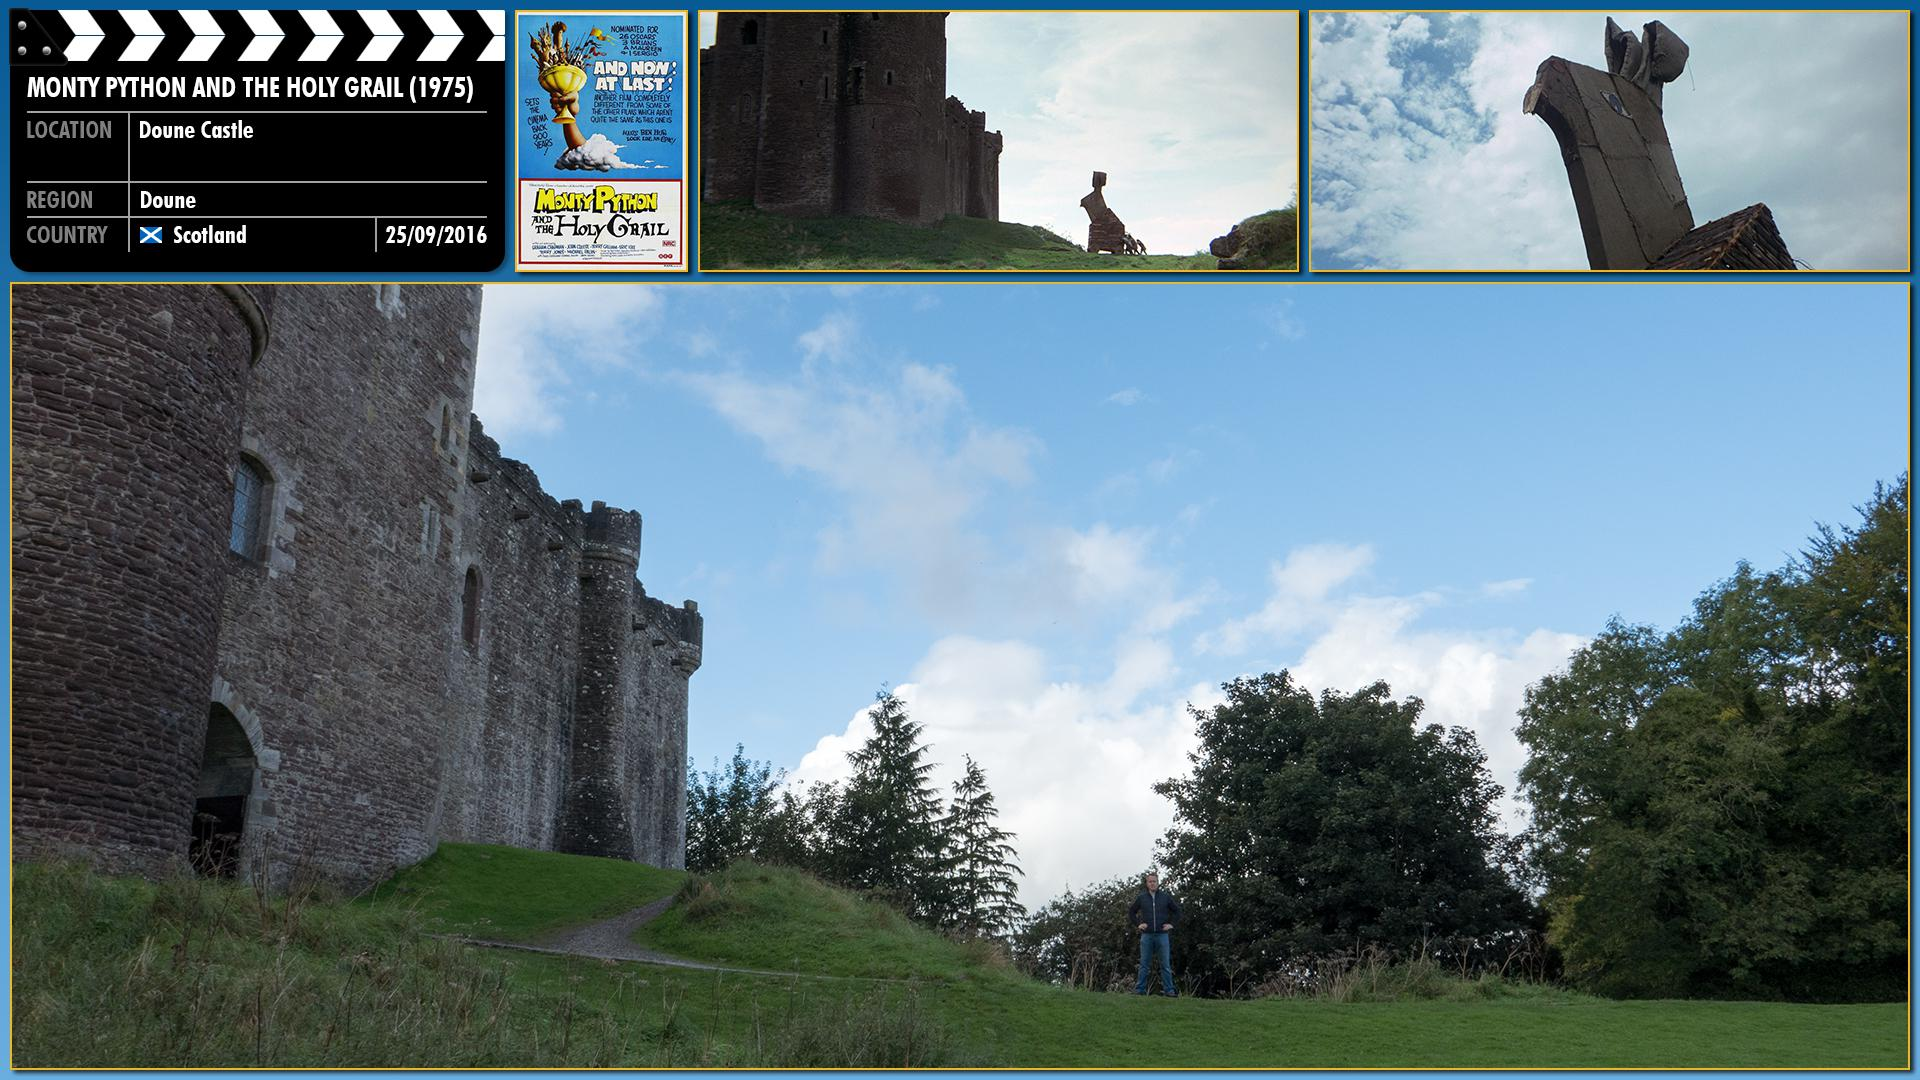 Filming location photo for Monty Python and the Holy Grail (1975) 3 of 7